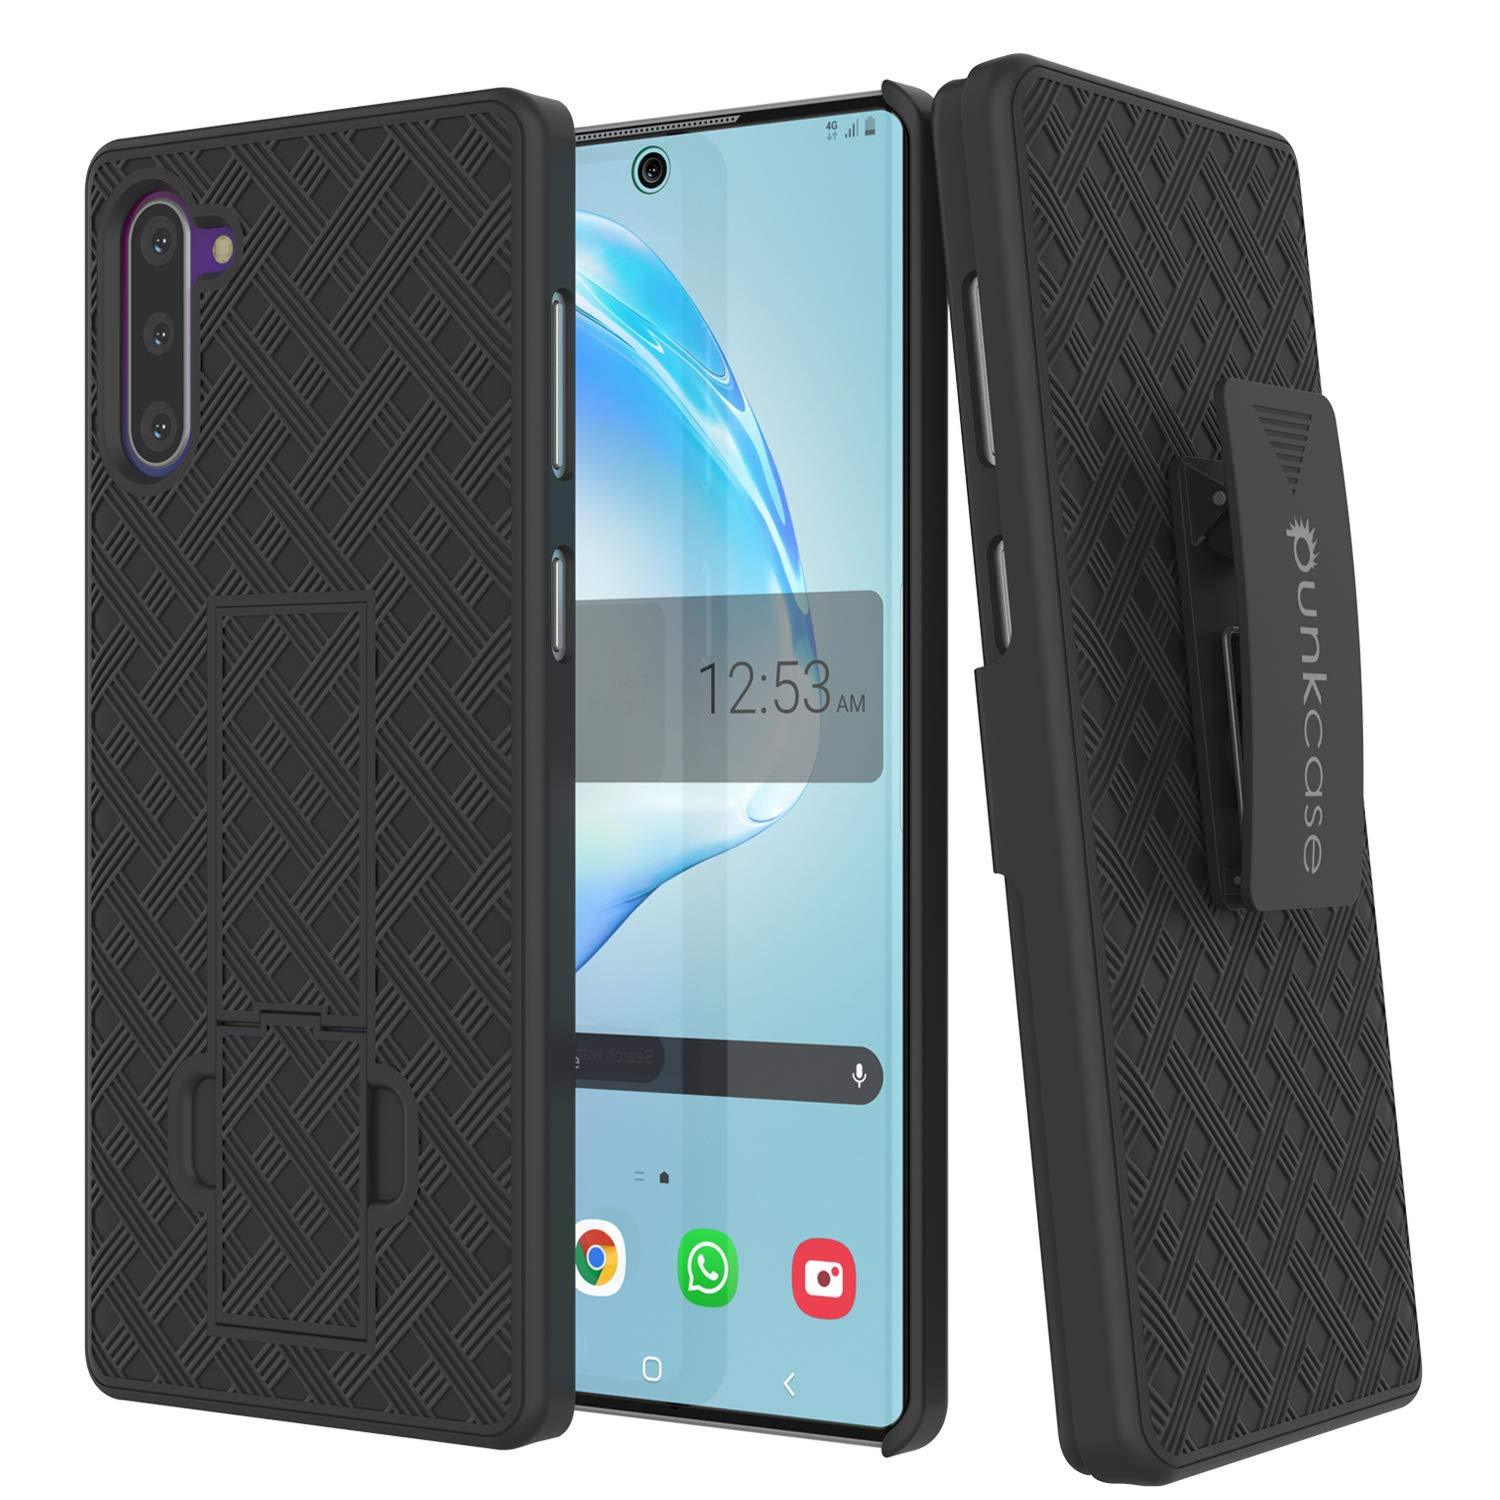 PunkCase Galaxy Note 20 Case with Screen Protector, Holster Belt Clip & Built-in Kickstand [Black]